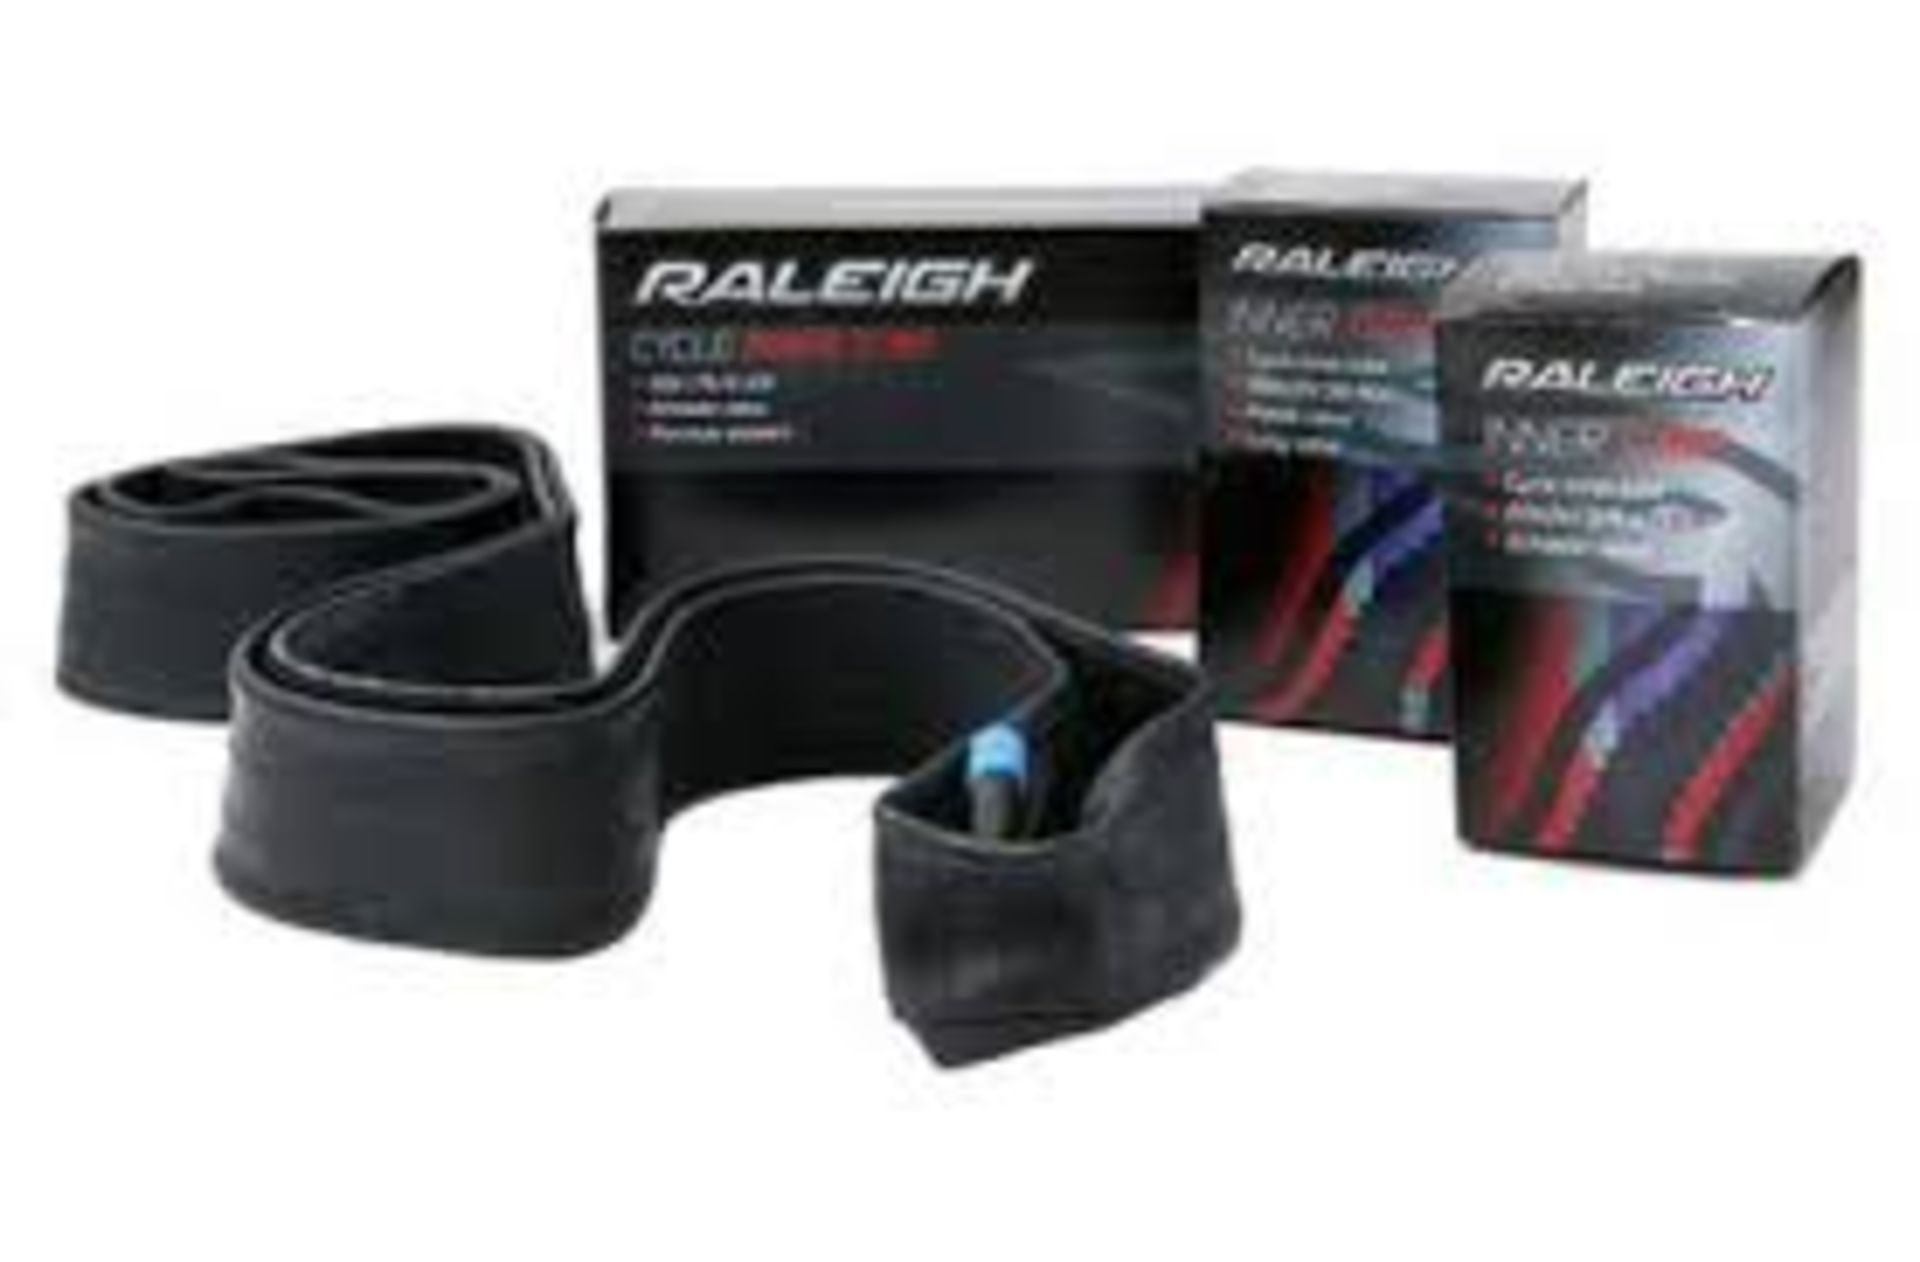 Lotto 10470 - V Brand New Two Raleigh Inner tubes 26 x 1.50-2.125 for adult mountain bike